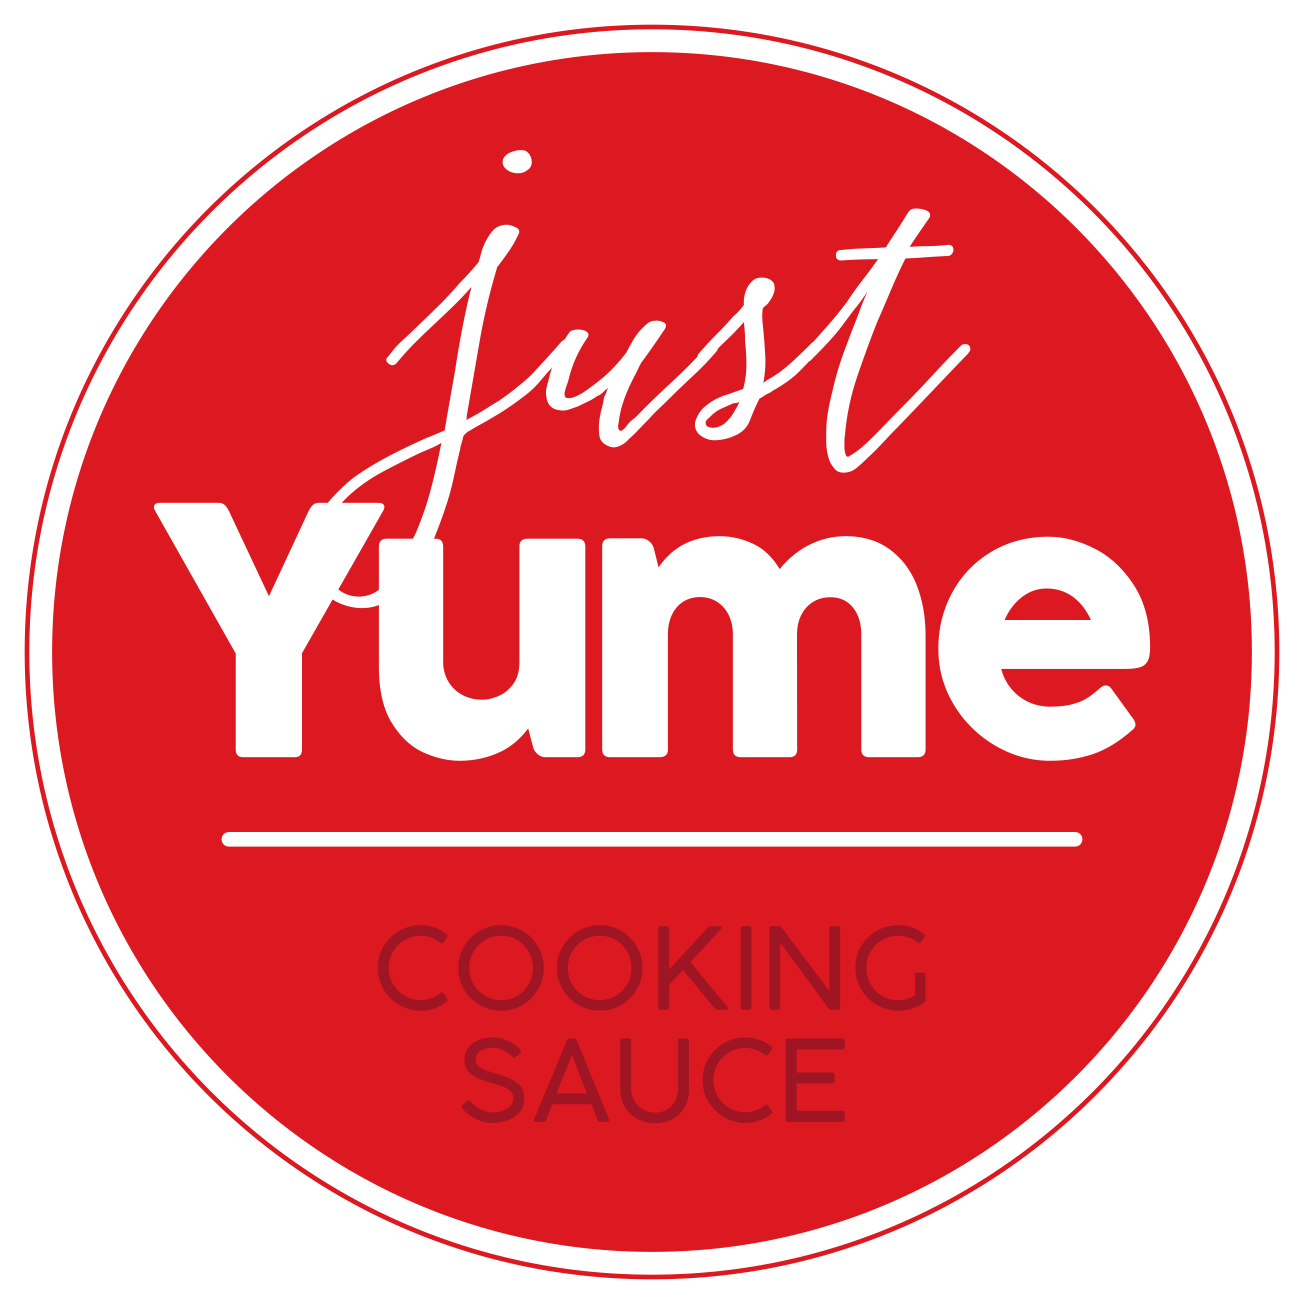 Just Yume